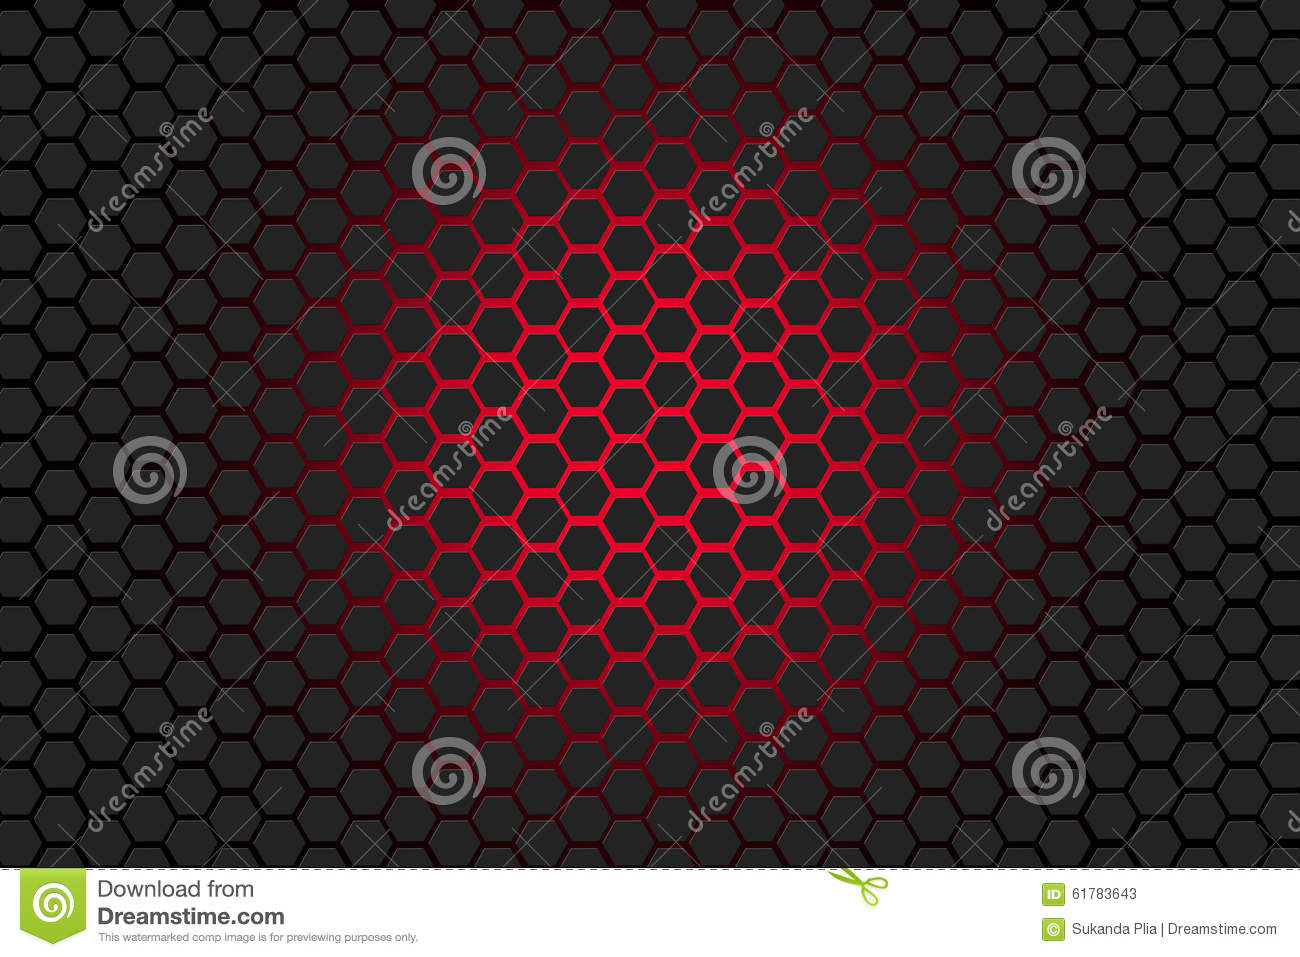 Hexagon grey and red background stock illustration image for Red and grey wallpaper